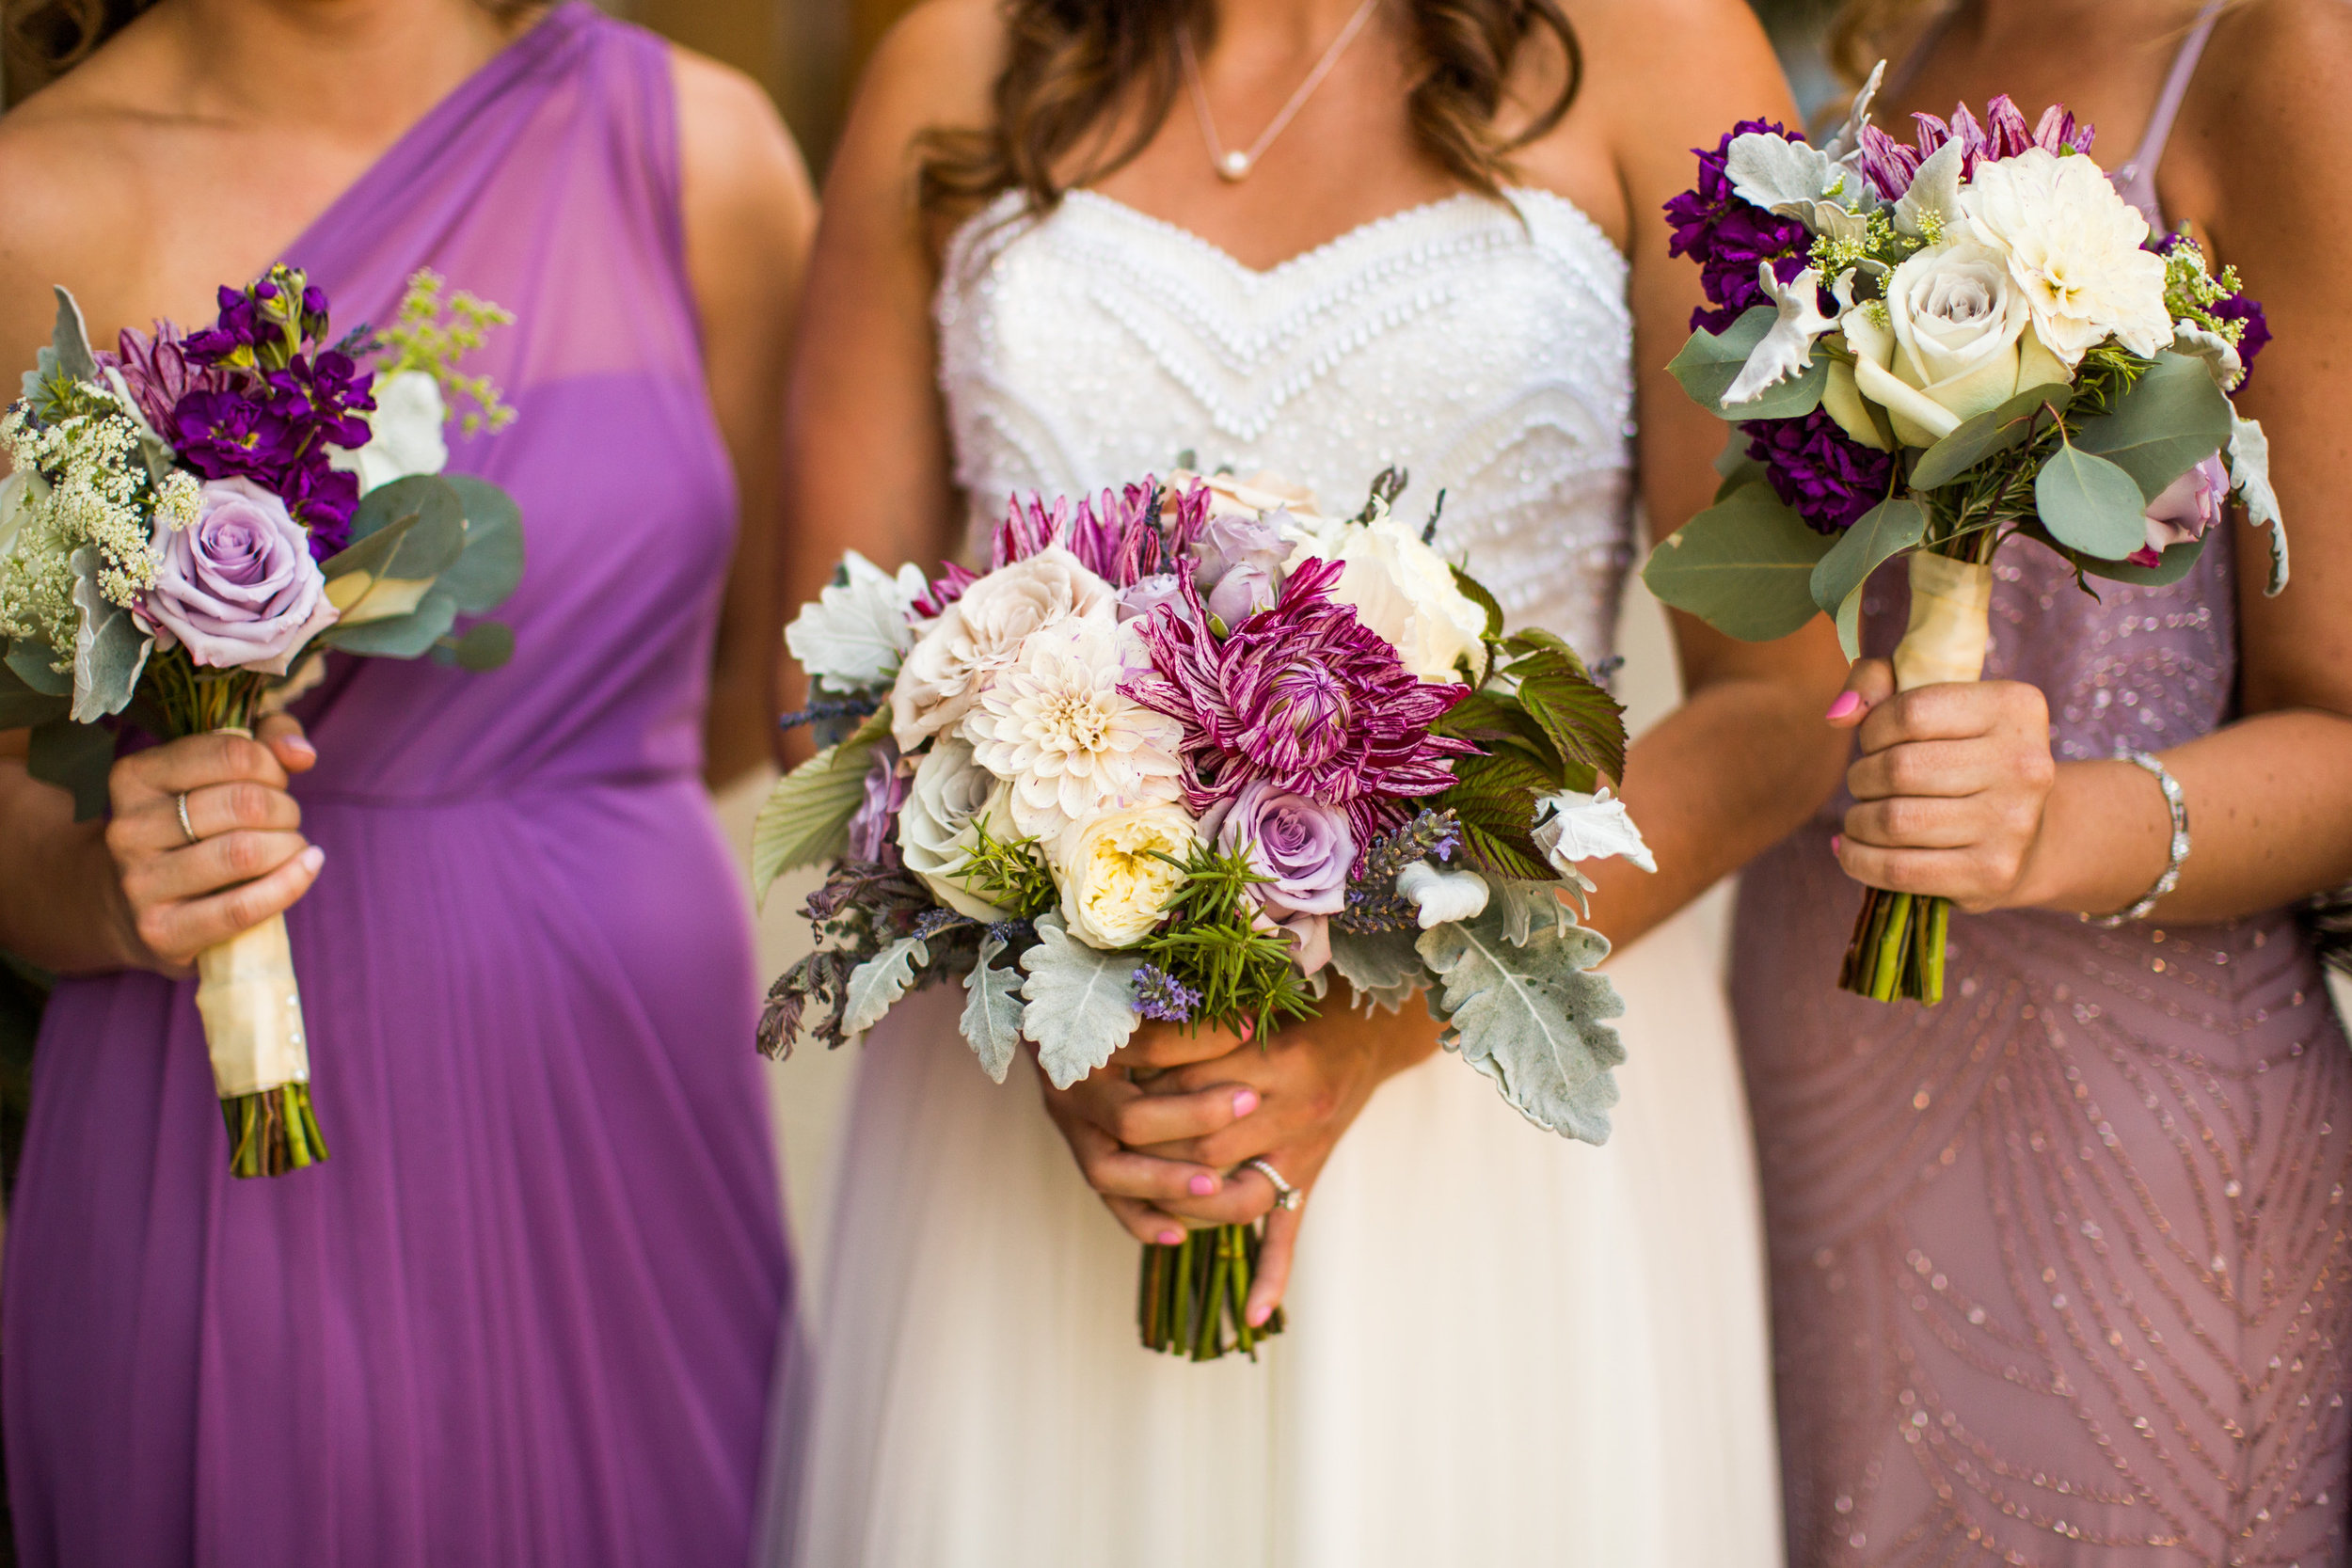 Seattle Wedding Planner, Wedding Wise | Ciccarelli Photography | Edgewater Hotel Wedding | Purple and cream bridesmaids bouquets